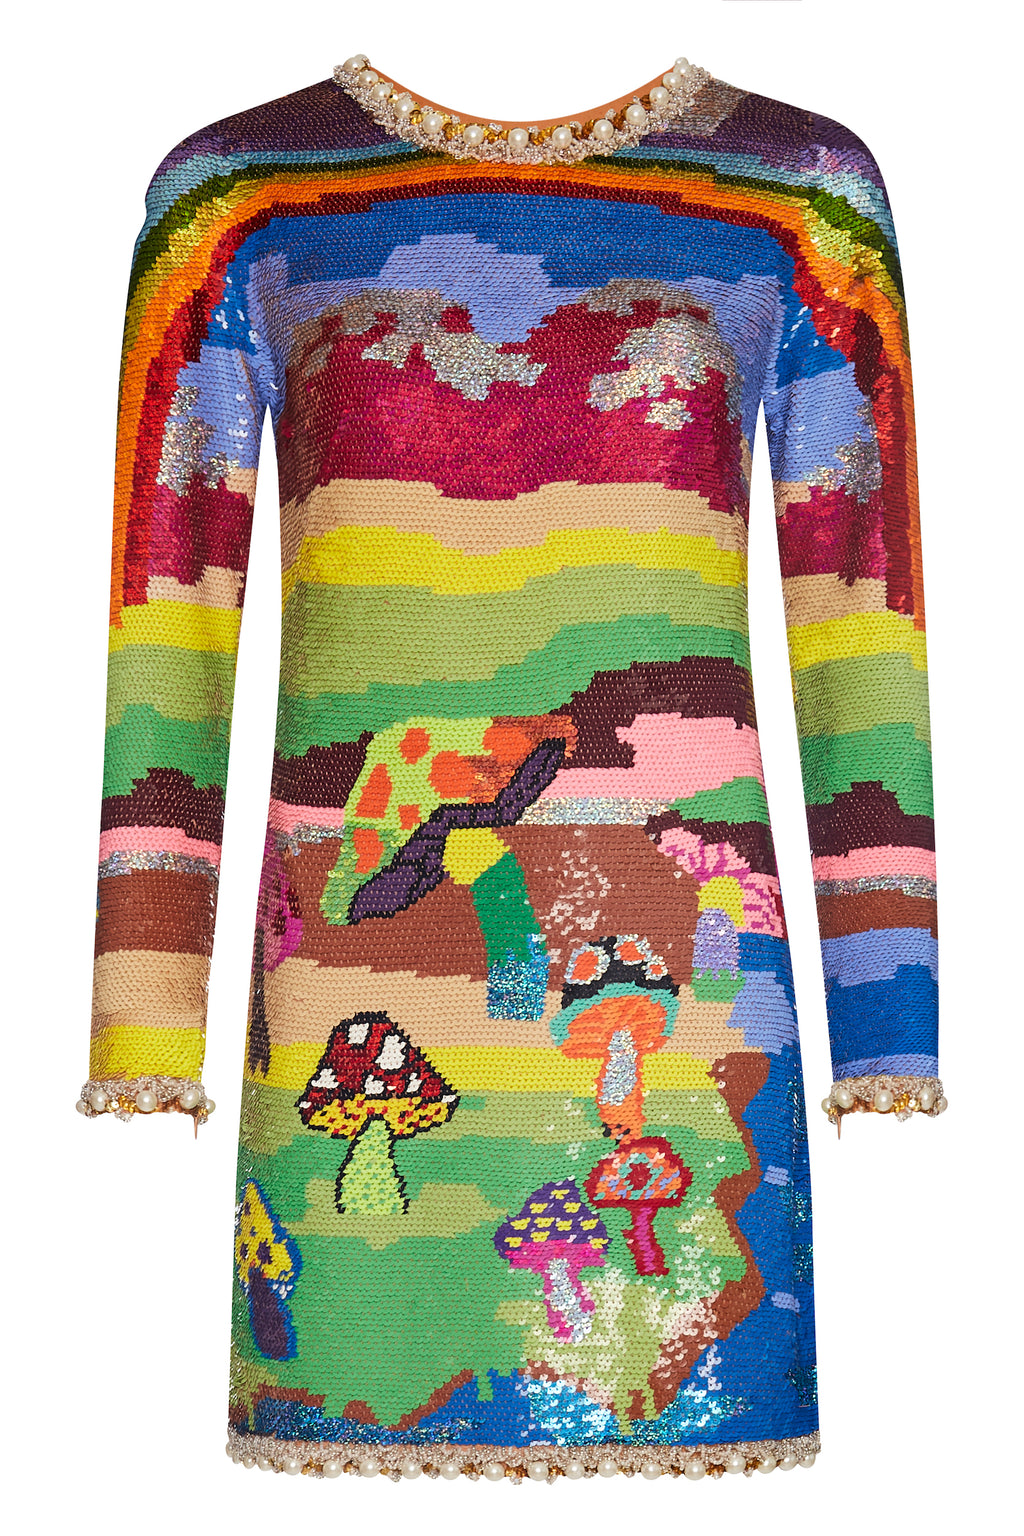 Rainbow Magic Mushroom Dress - Annie's Ibiza